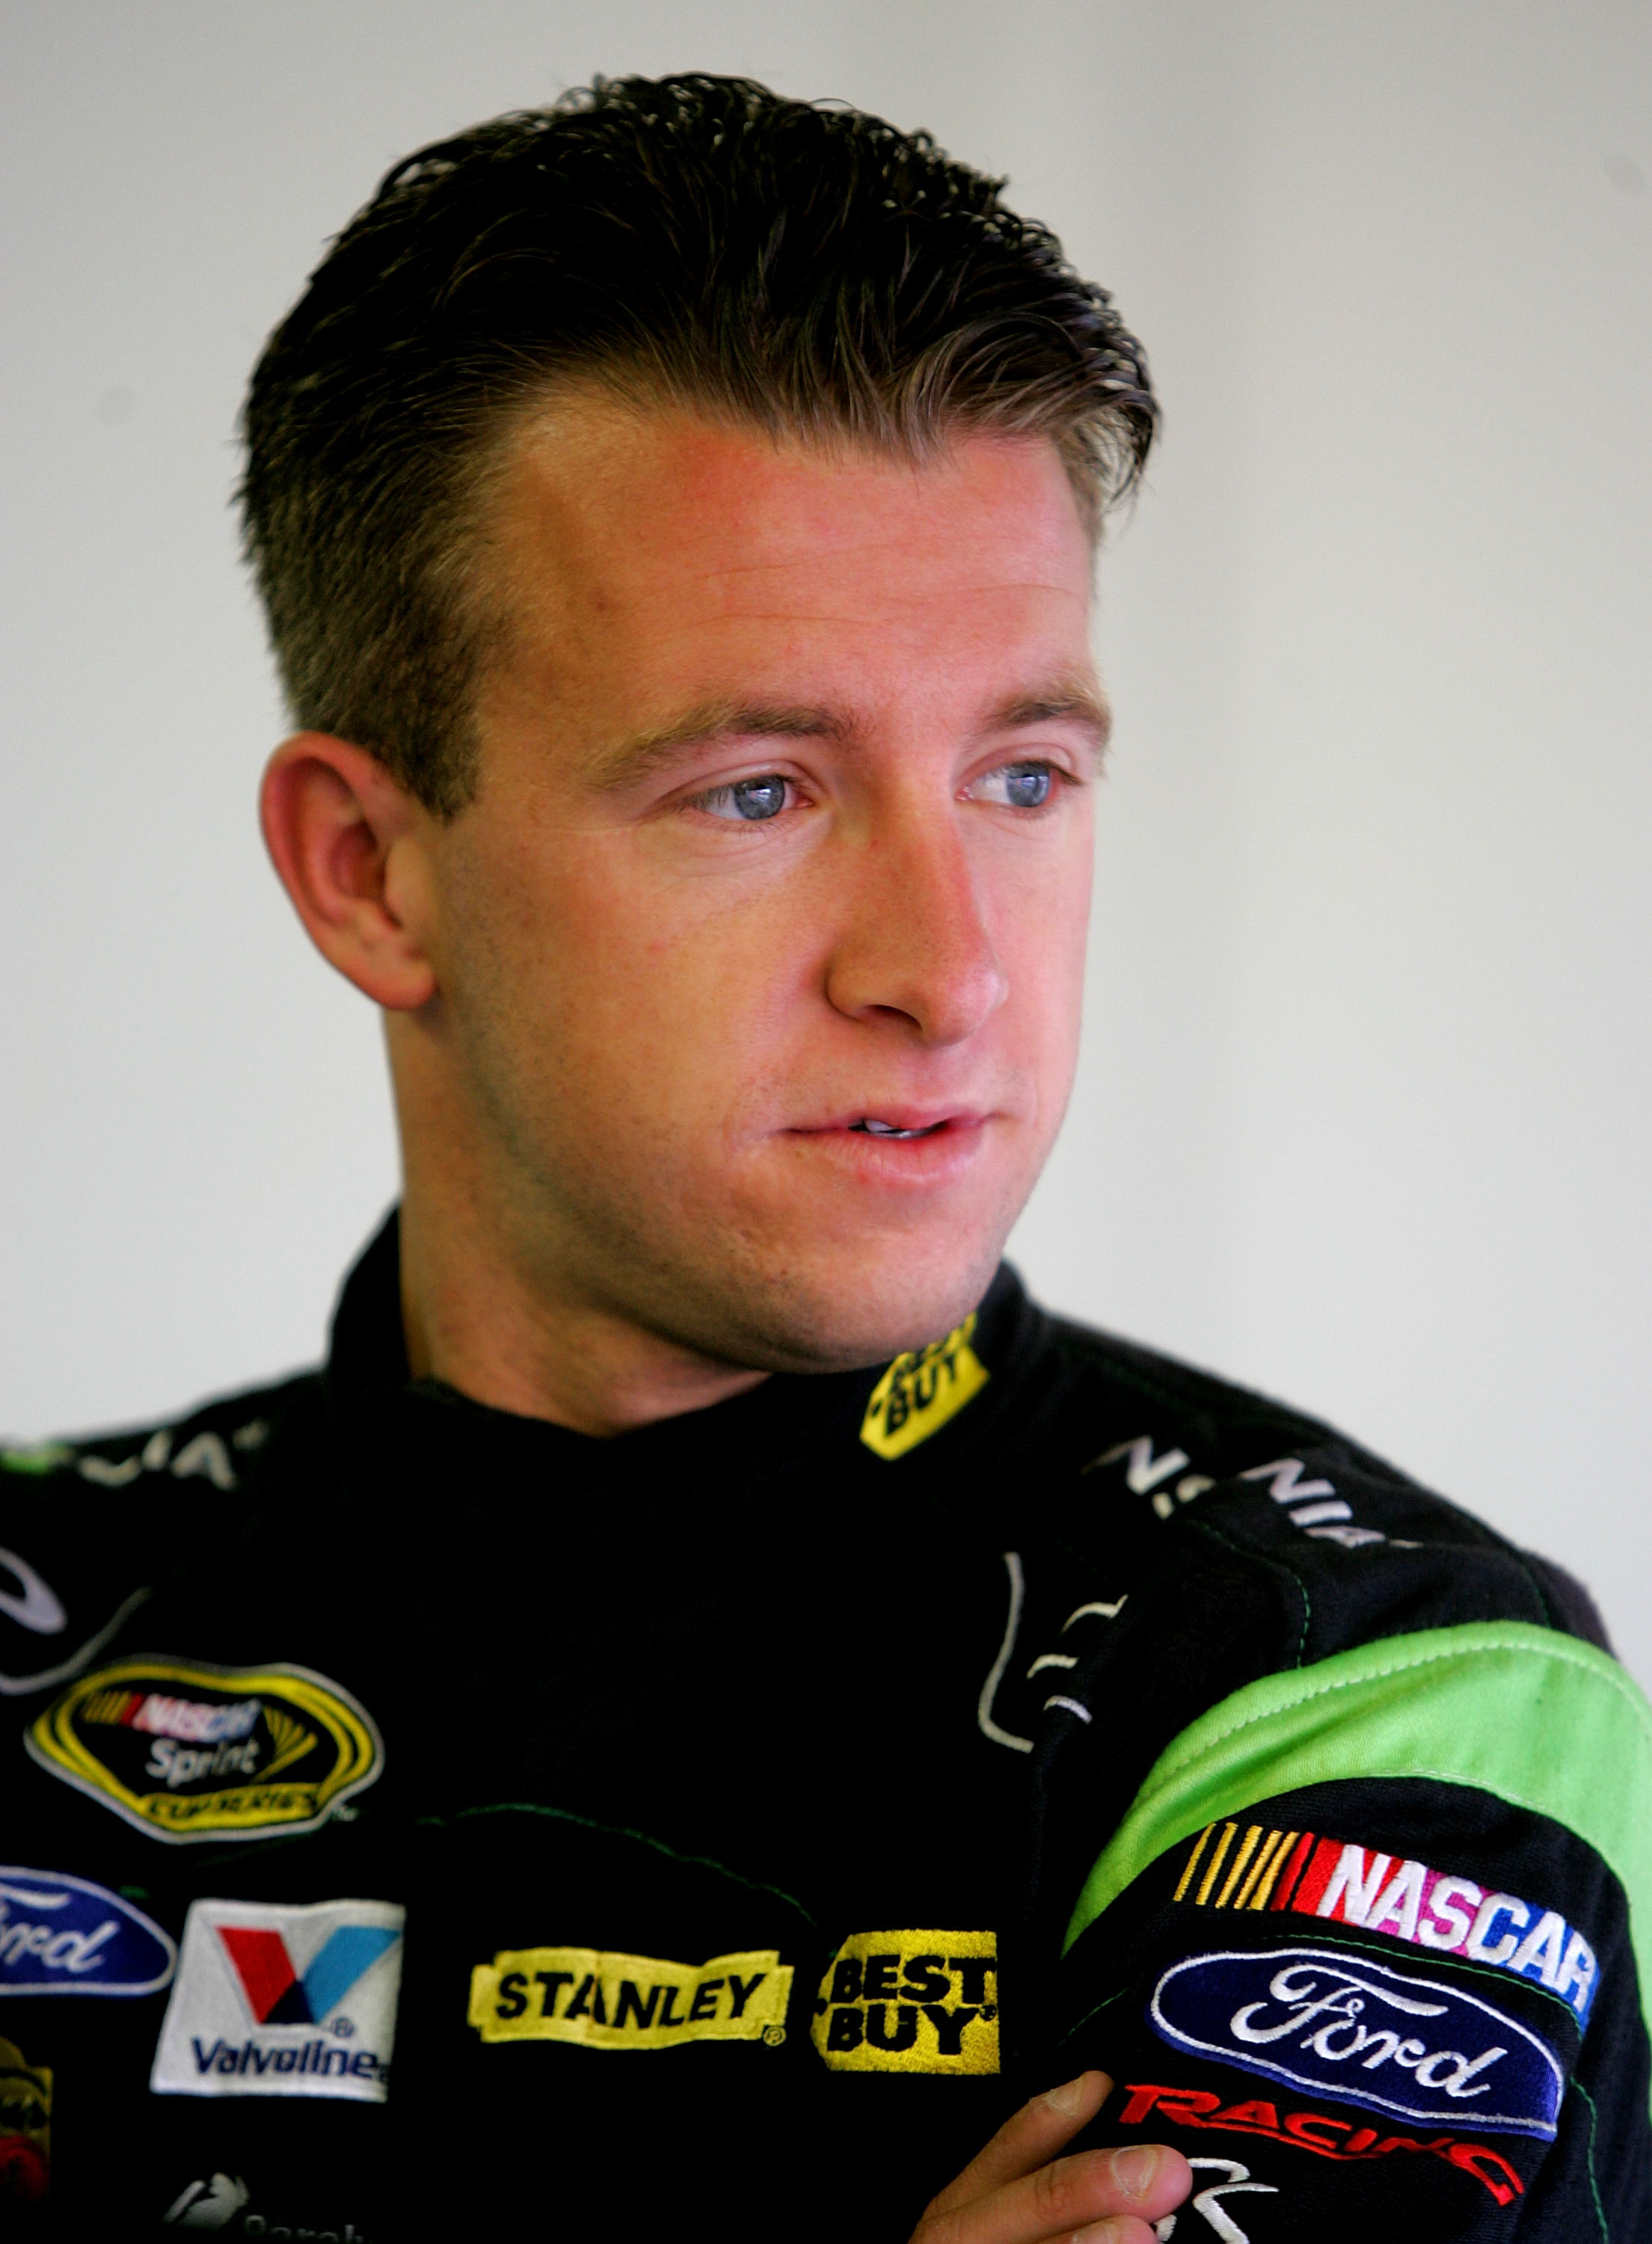 LOUDON, NH - SEPTEMBER 18:  A J Allmendinger, driver of the #43 Insignia HDTV Ford, stands in the garage during practice for the NASCAR Sprint Cup Series Sylvania 300 at New Hampshire Motor Speedway on September 18, 2010 in Loudon, New Hampshire.  (Photo